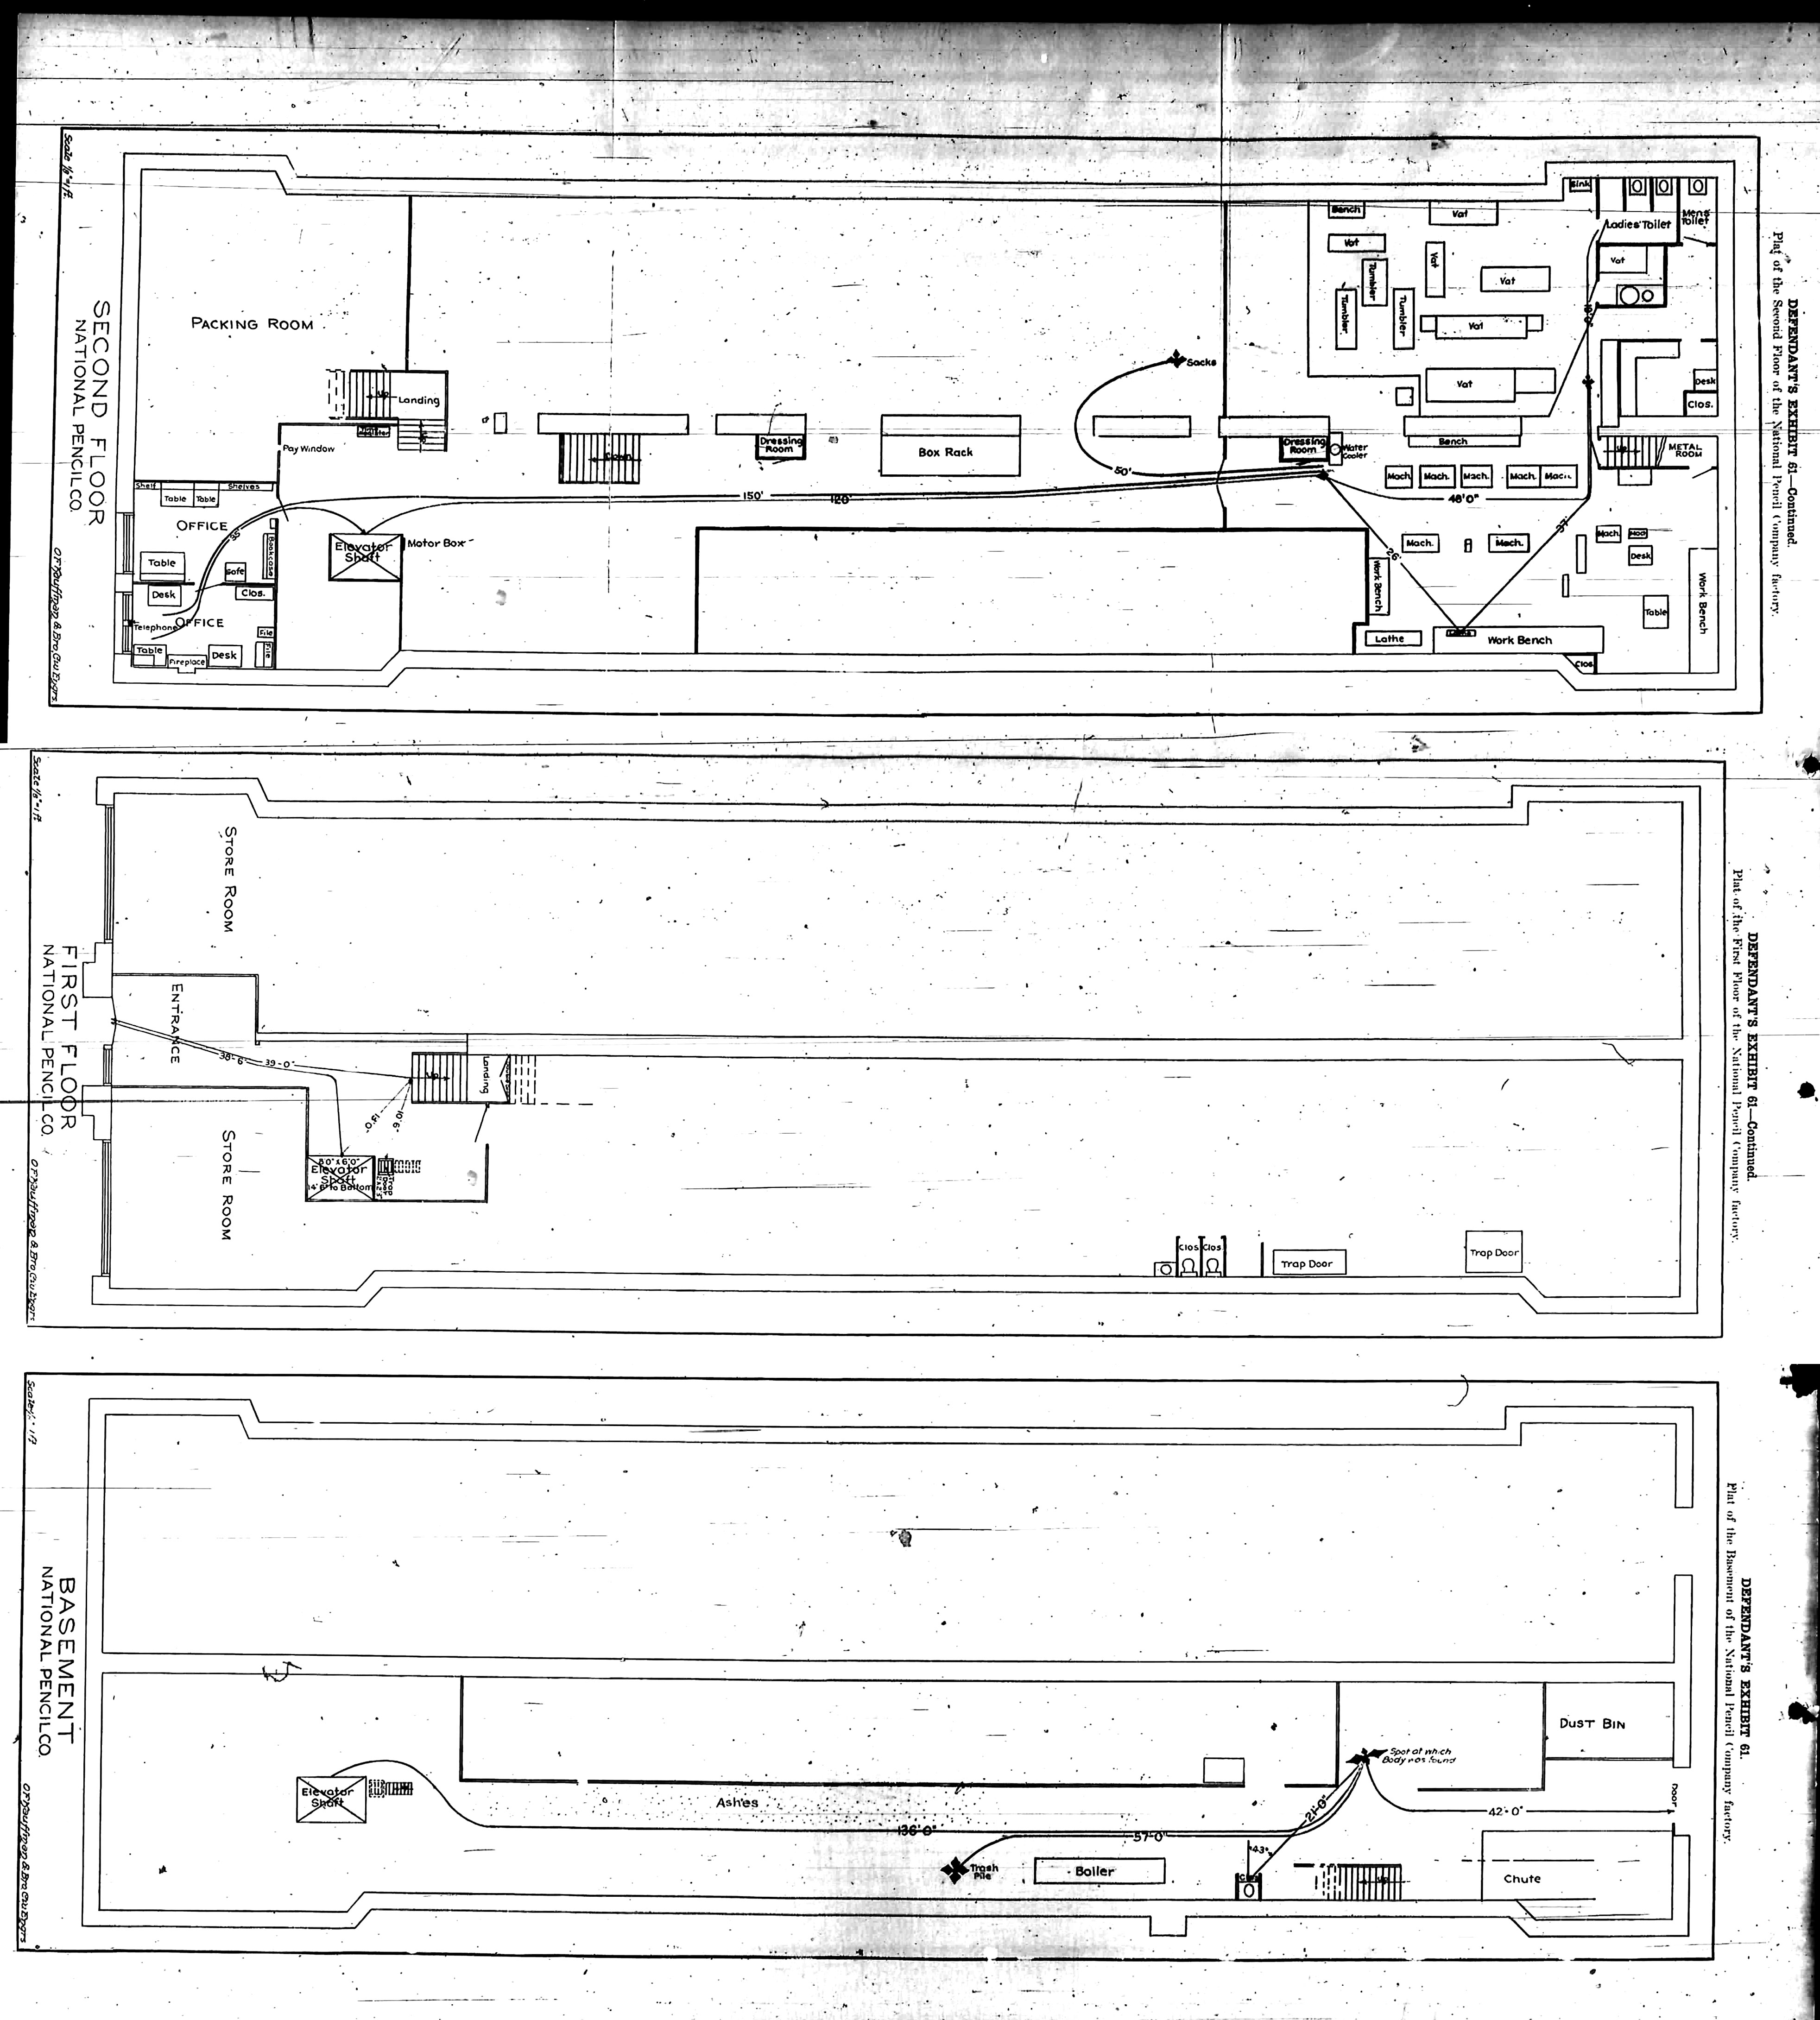 Leo frank guilty of murder part 1 floor plan of the national pencil company click for high resolution malvernweather Image collections